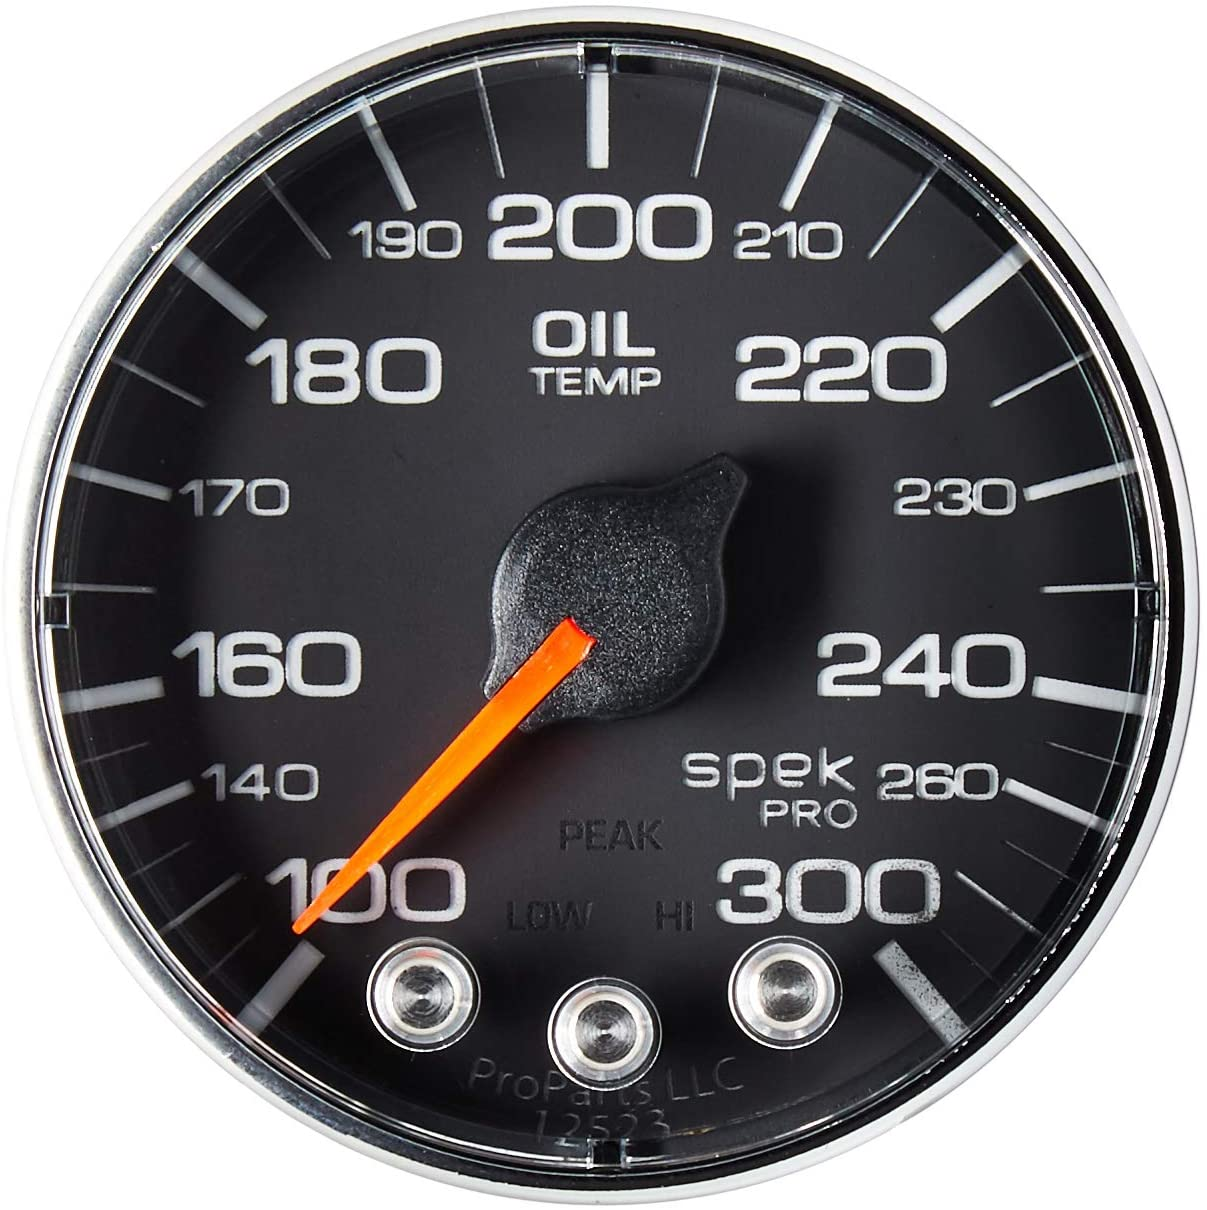 AUTO Max 84% OFF Animer and price revision METER P322318 Gauge Oil Temp 2 1 300ºf S Spek-Pro 16